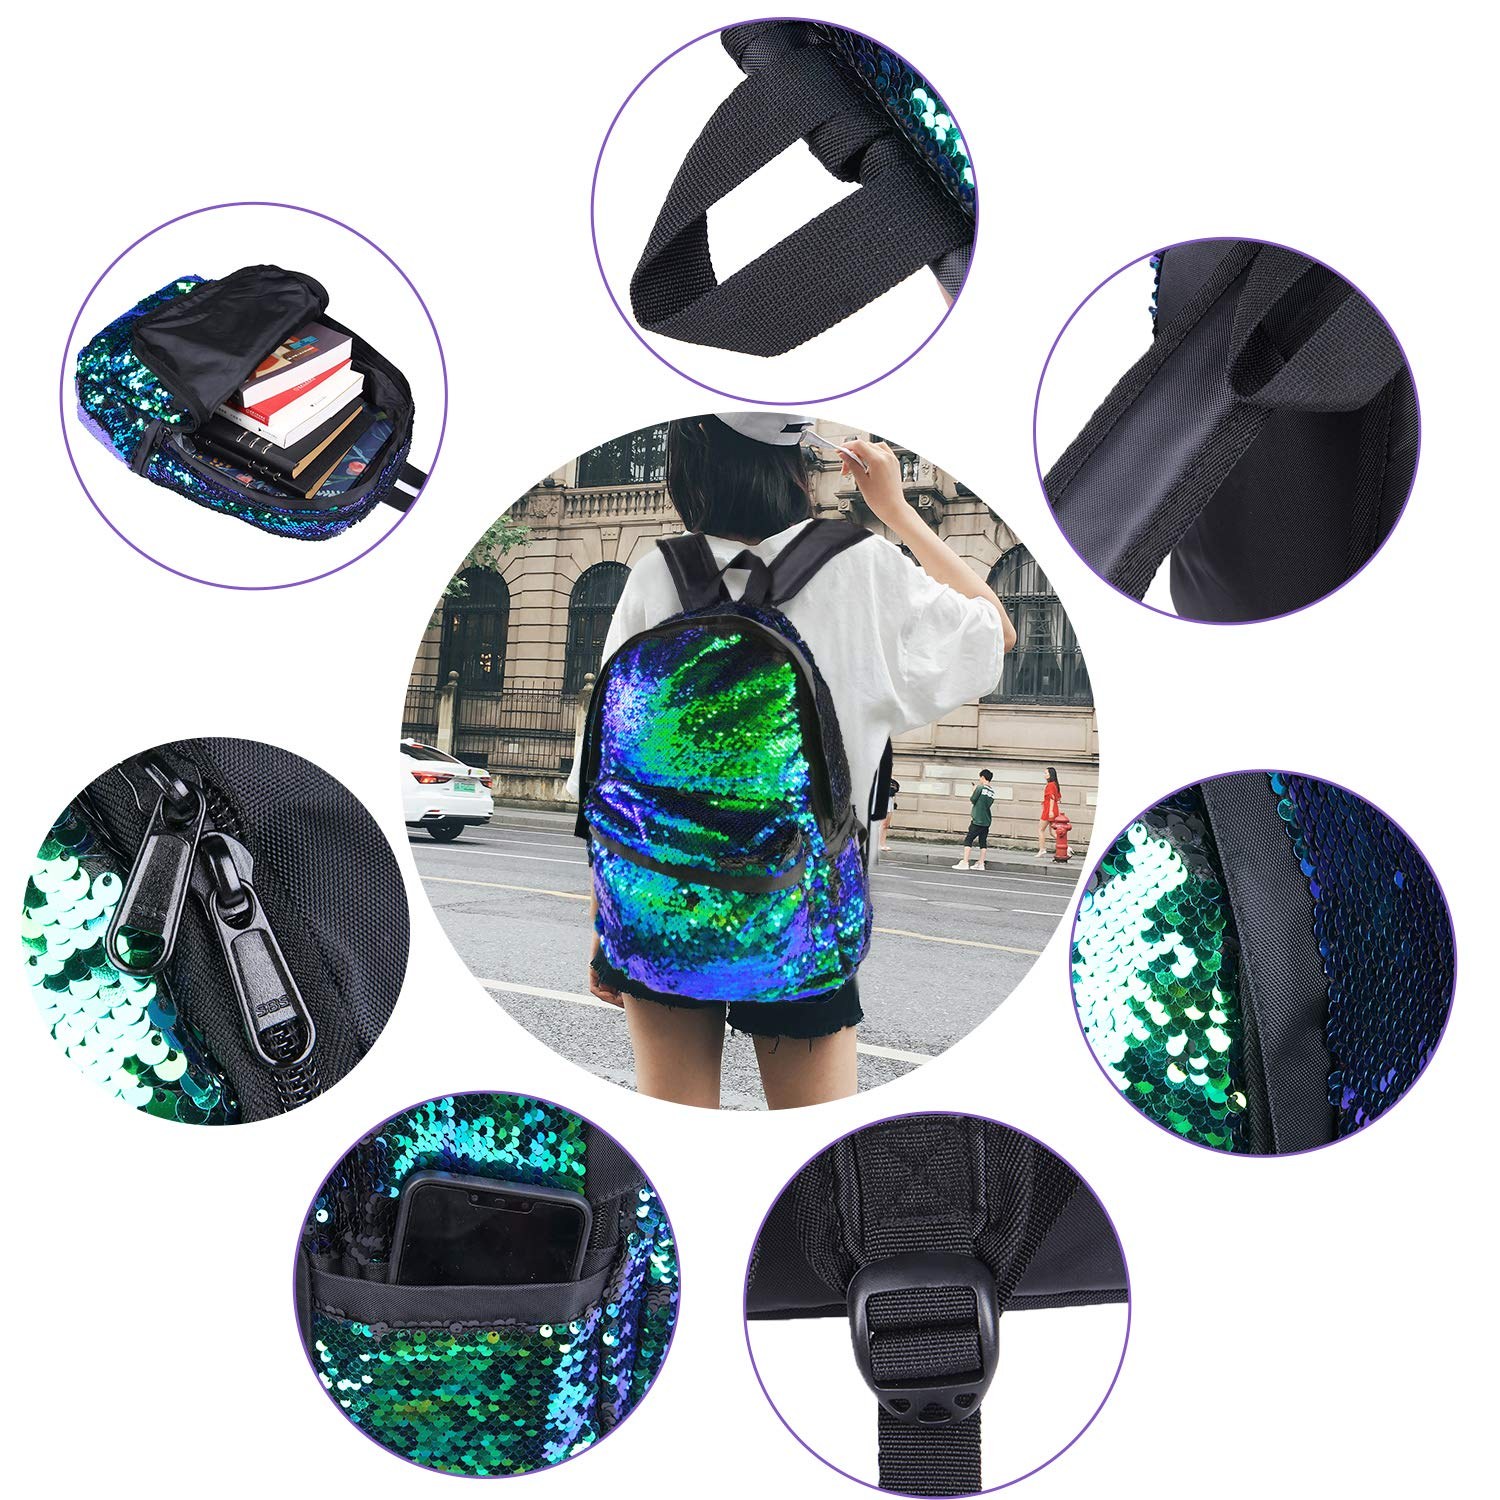 Purple YOUTH UNION Reversible Magic Sequin Backpack School Bags,Lightweight Travel Mermaid Glittering Backpack for Girls and Boys